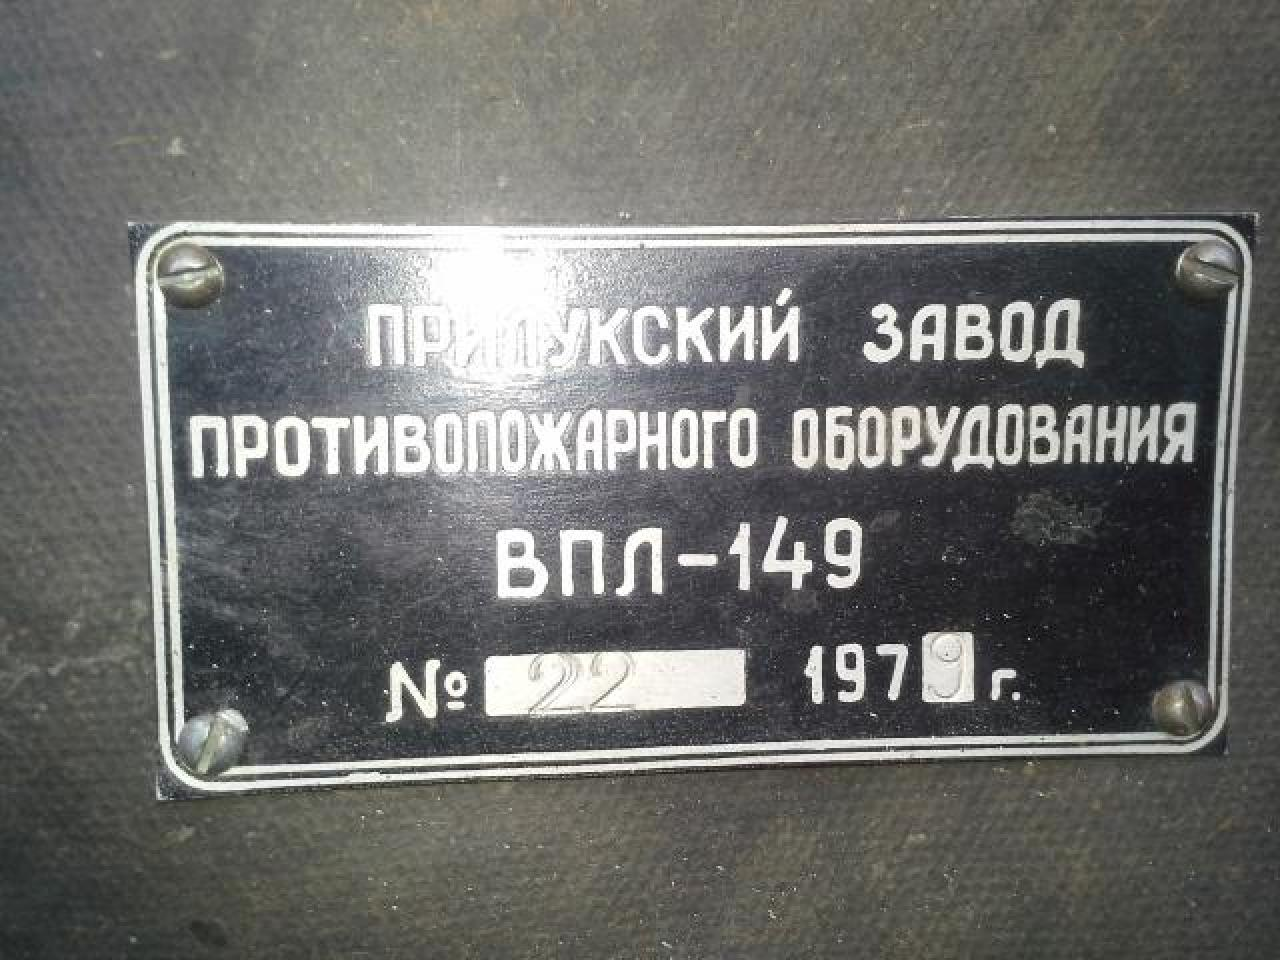 For sale all-terrain vehicle GAZ-71 VPL-149. - 6